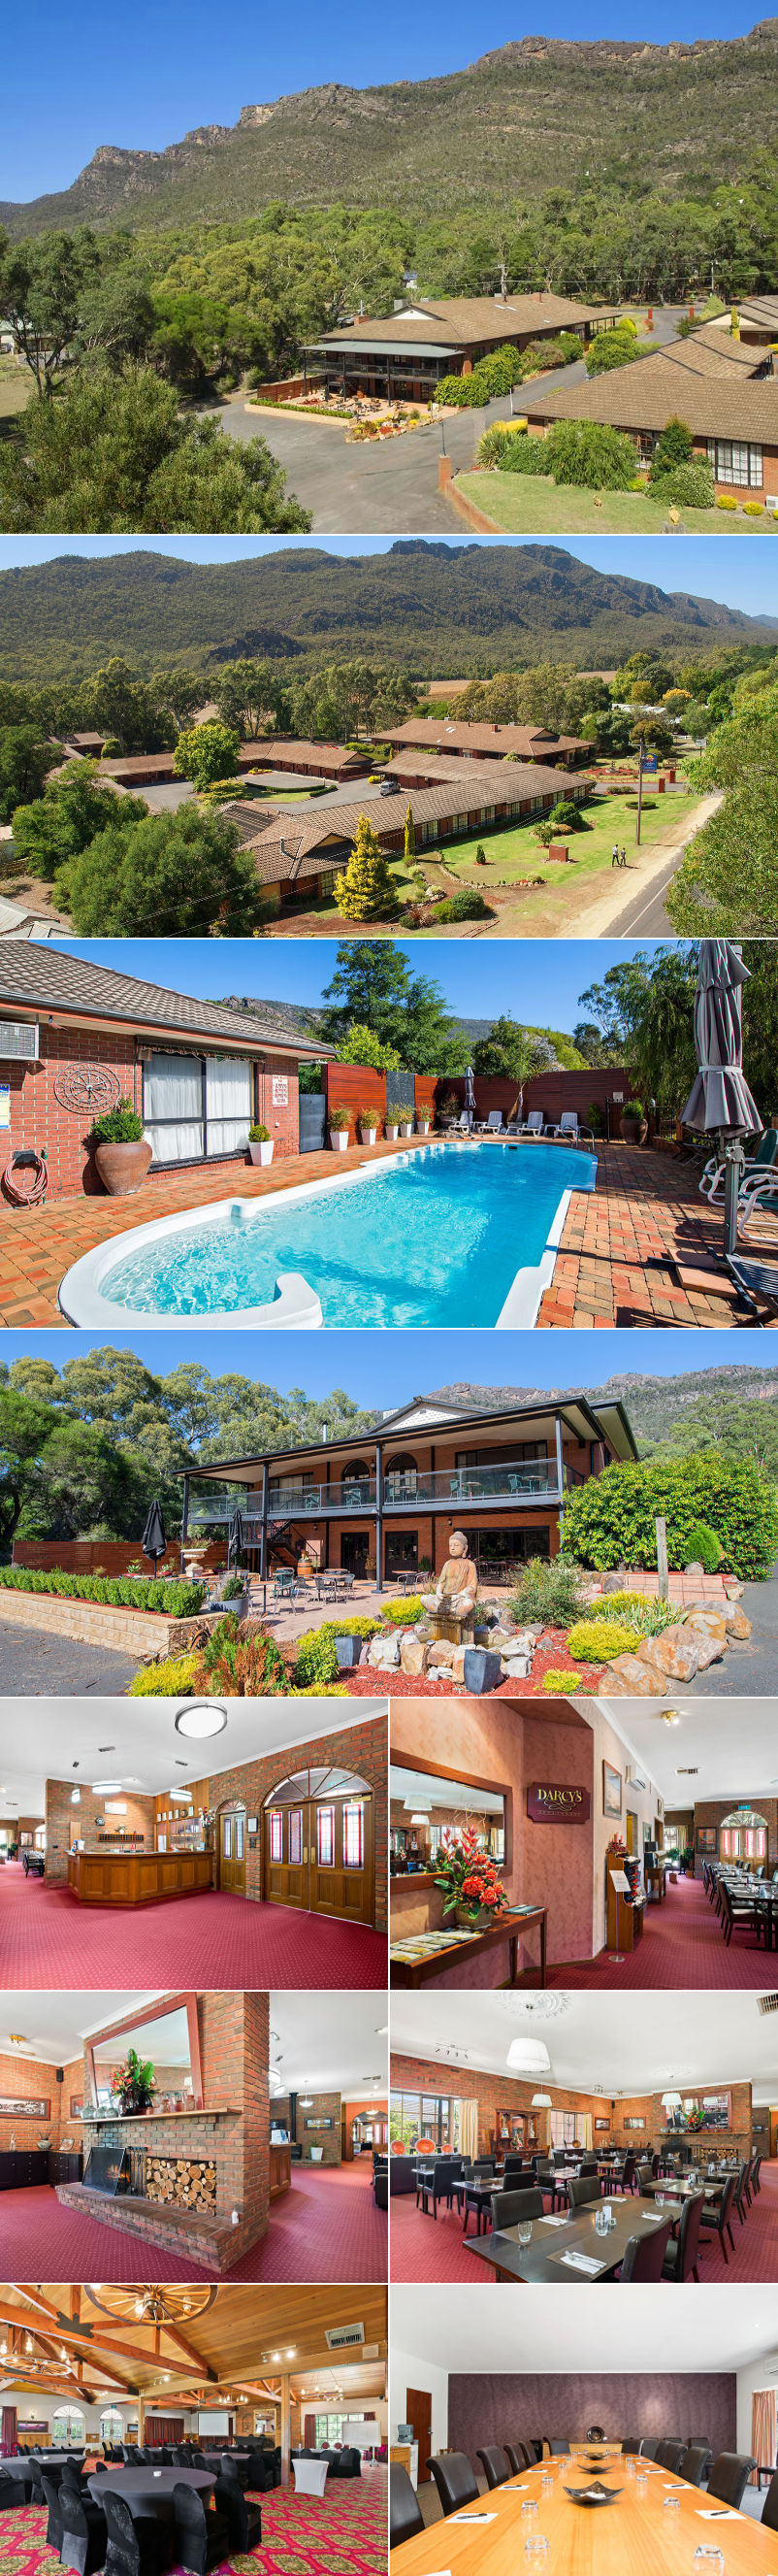 Comfort Inn Country Plaza Halls Gap - Grounds and facilities